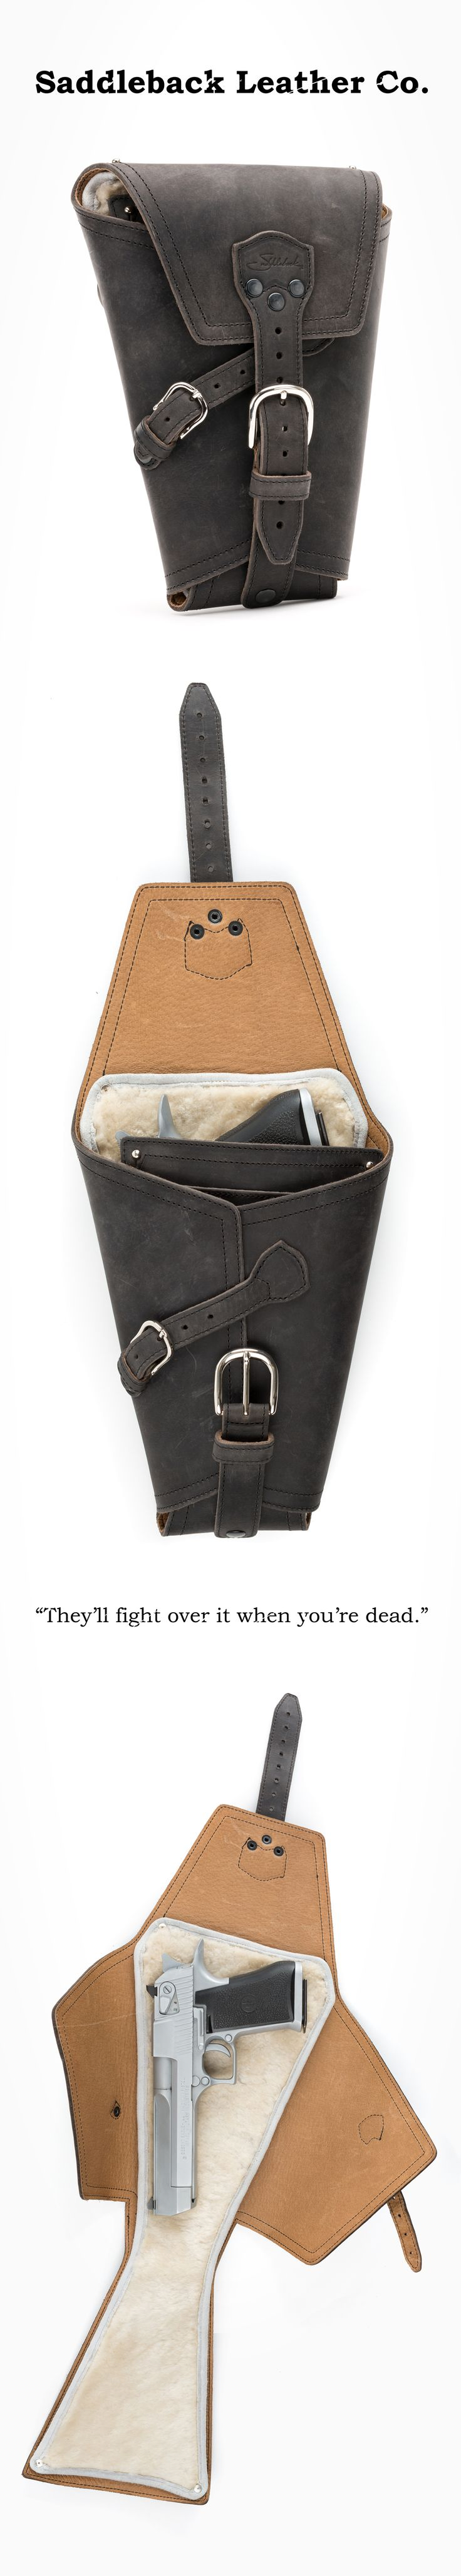 The Saddleback Leather Pistol Wrap in Carbon | 100 Year Warranty | $209.00